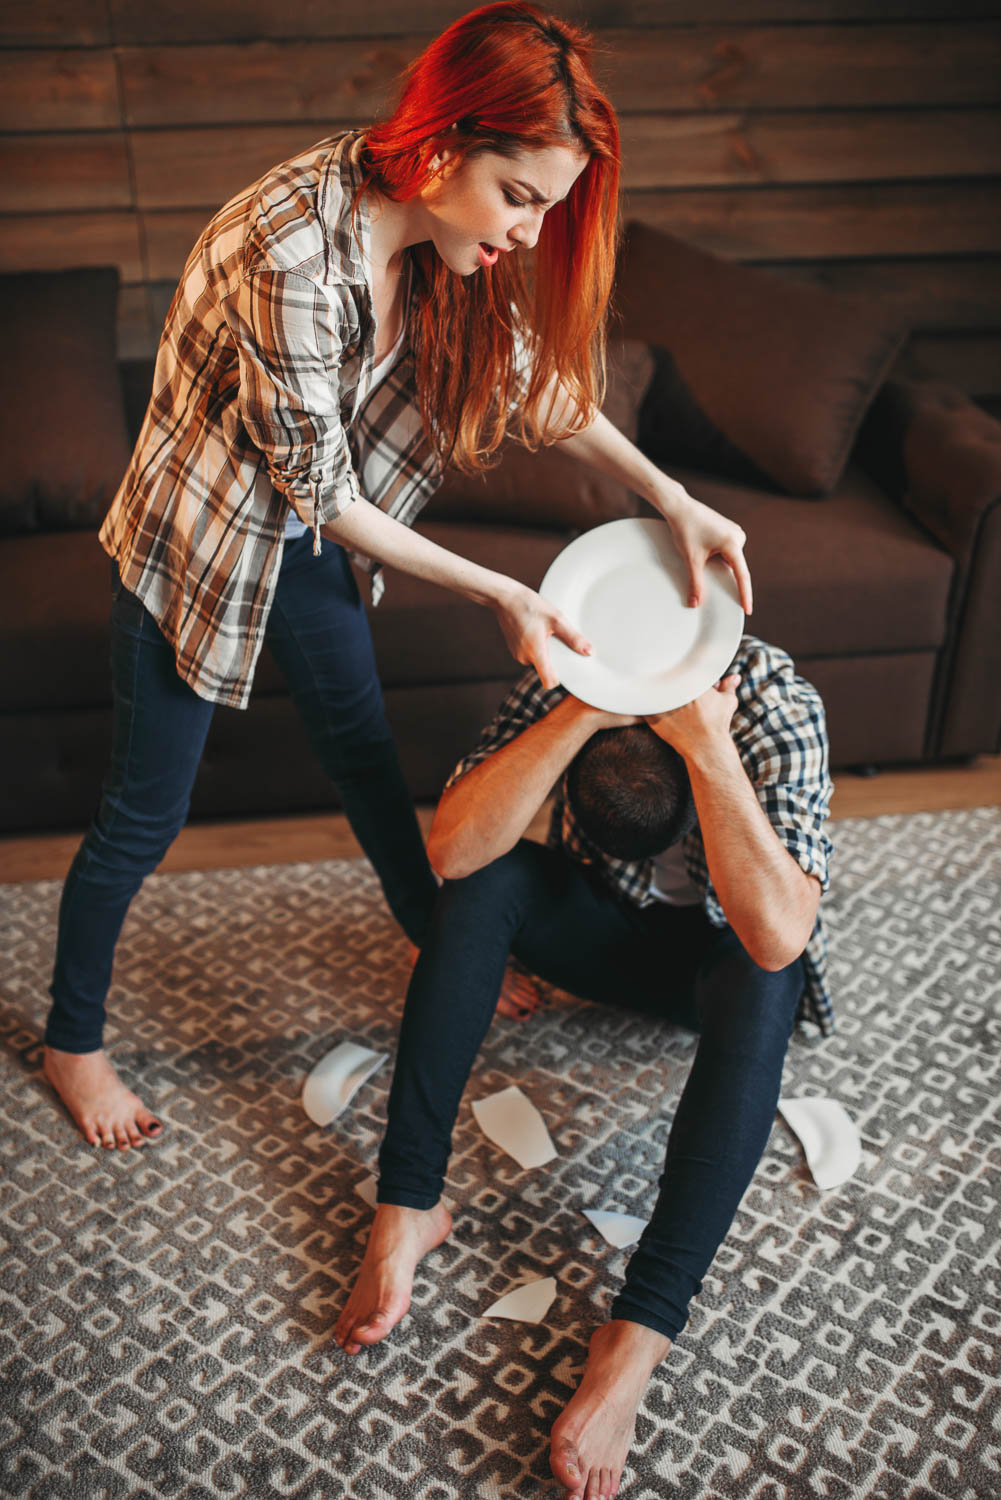 simple assault charges can happen quickly, but you need a fort lauderdale defense attorney to defend your simple assault charge- such as breaking dishes over someone's head